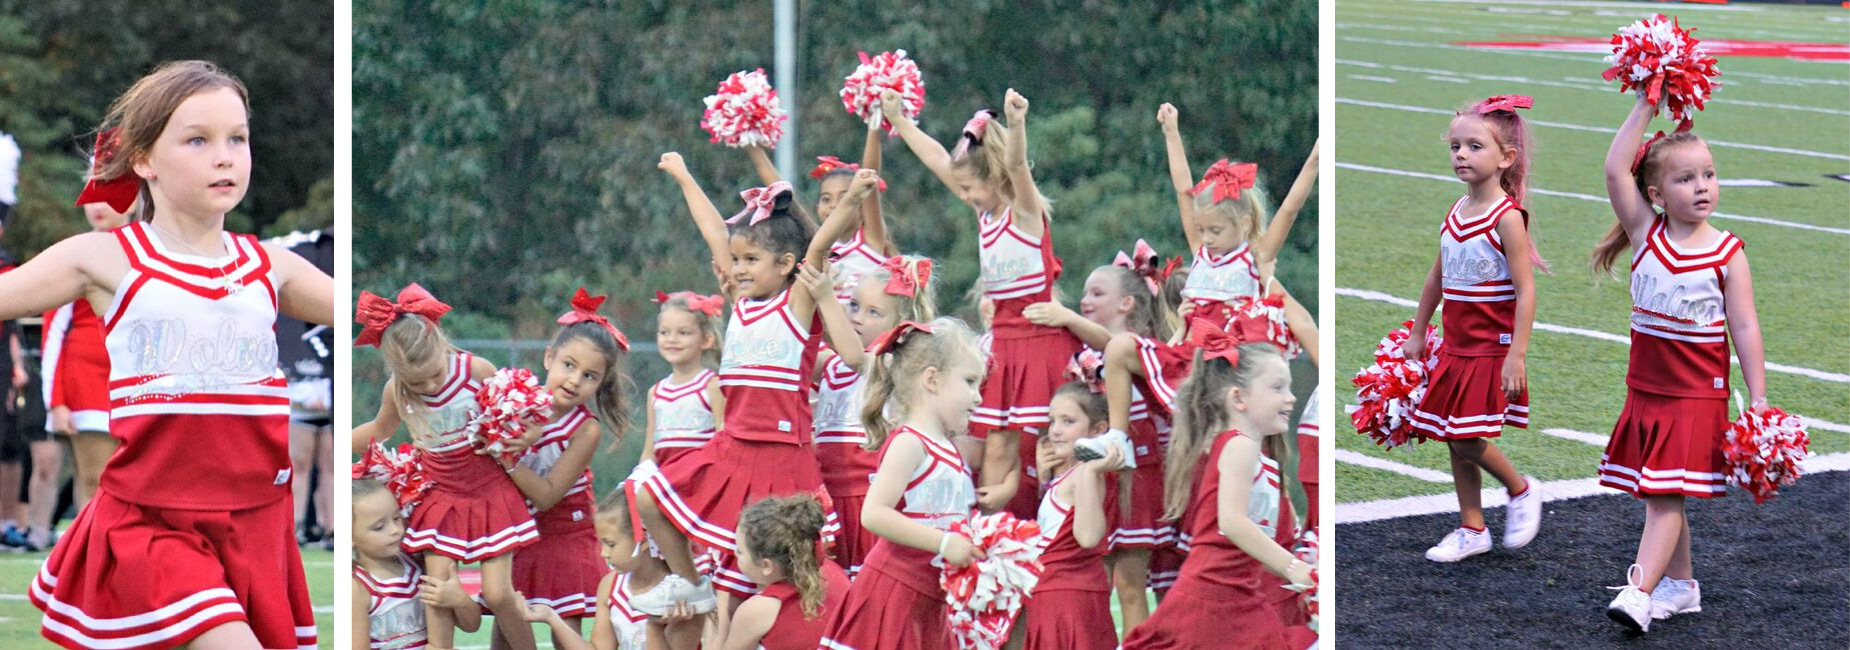 Youth Cheerleaders